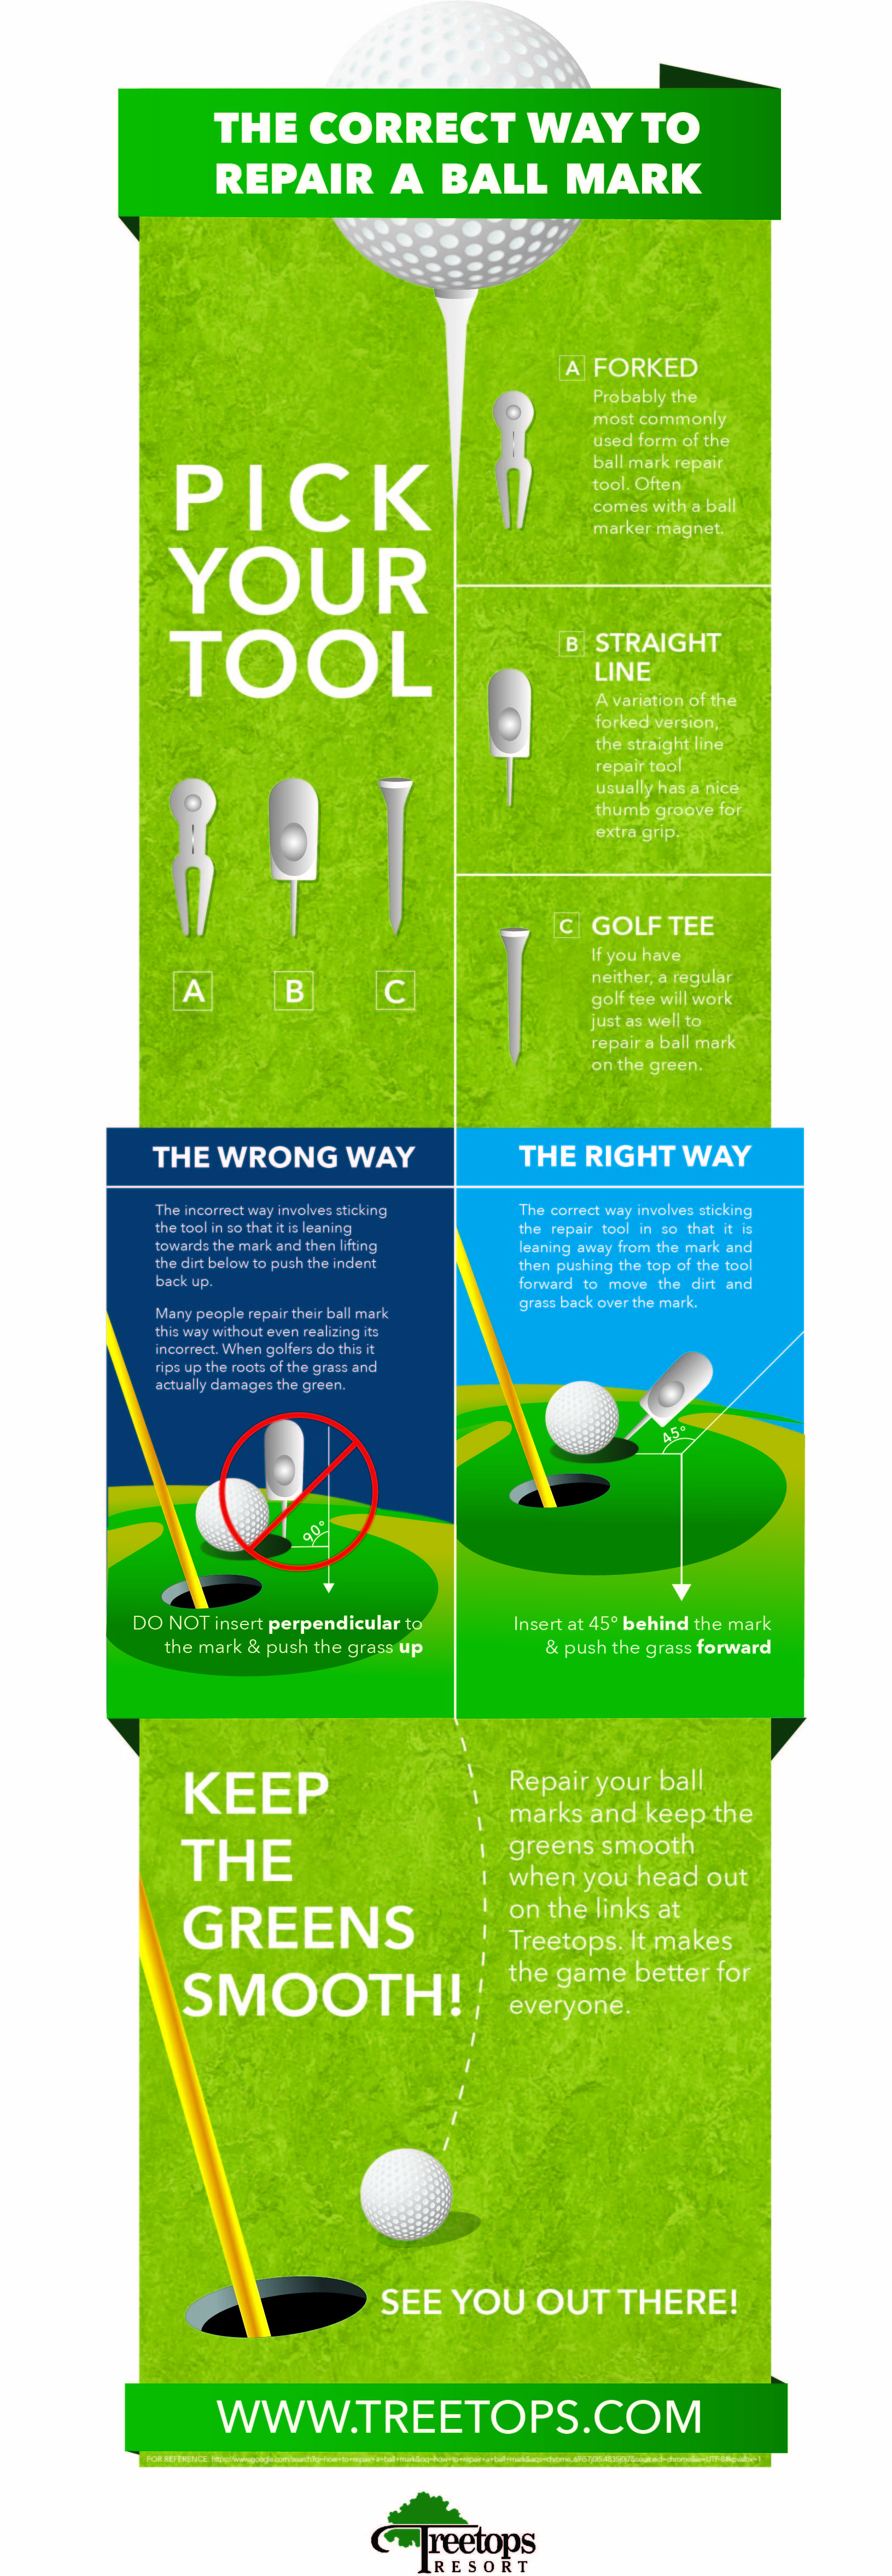 This infographic shows the correct way to repair a ball mark without damaging the green